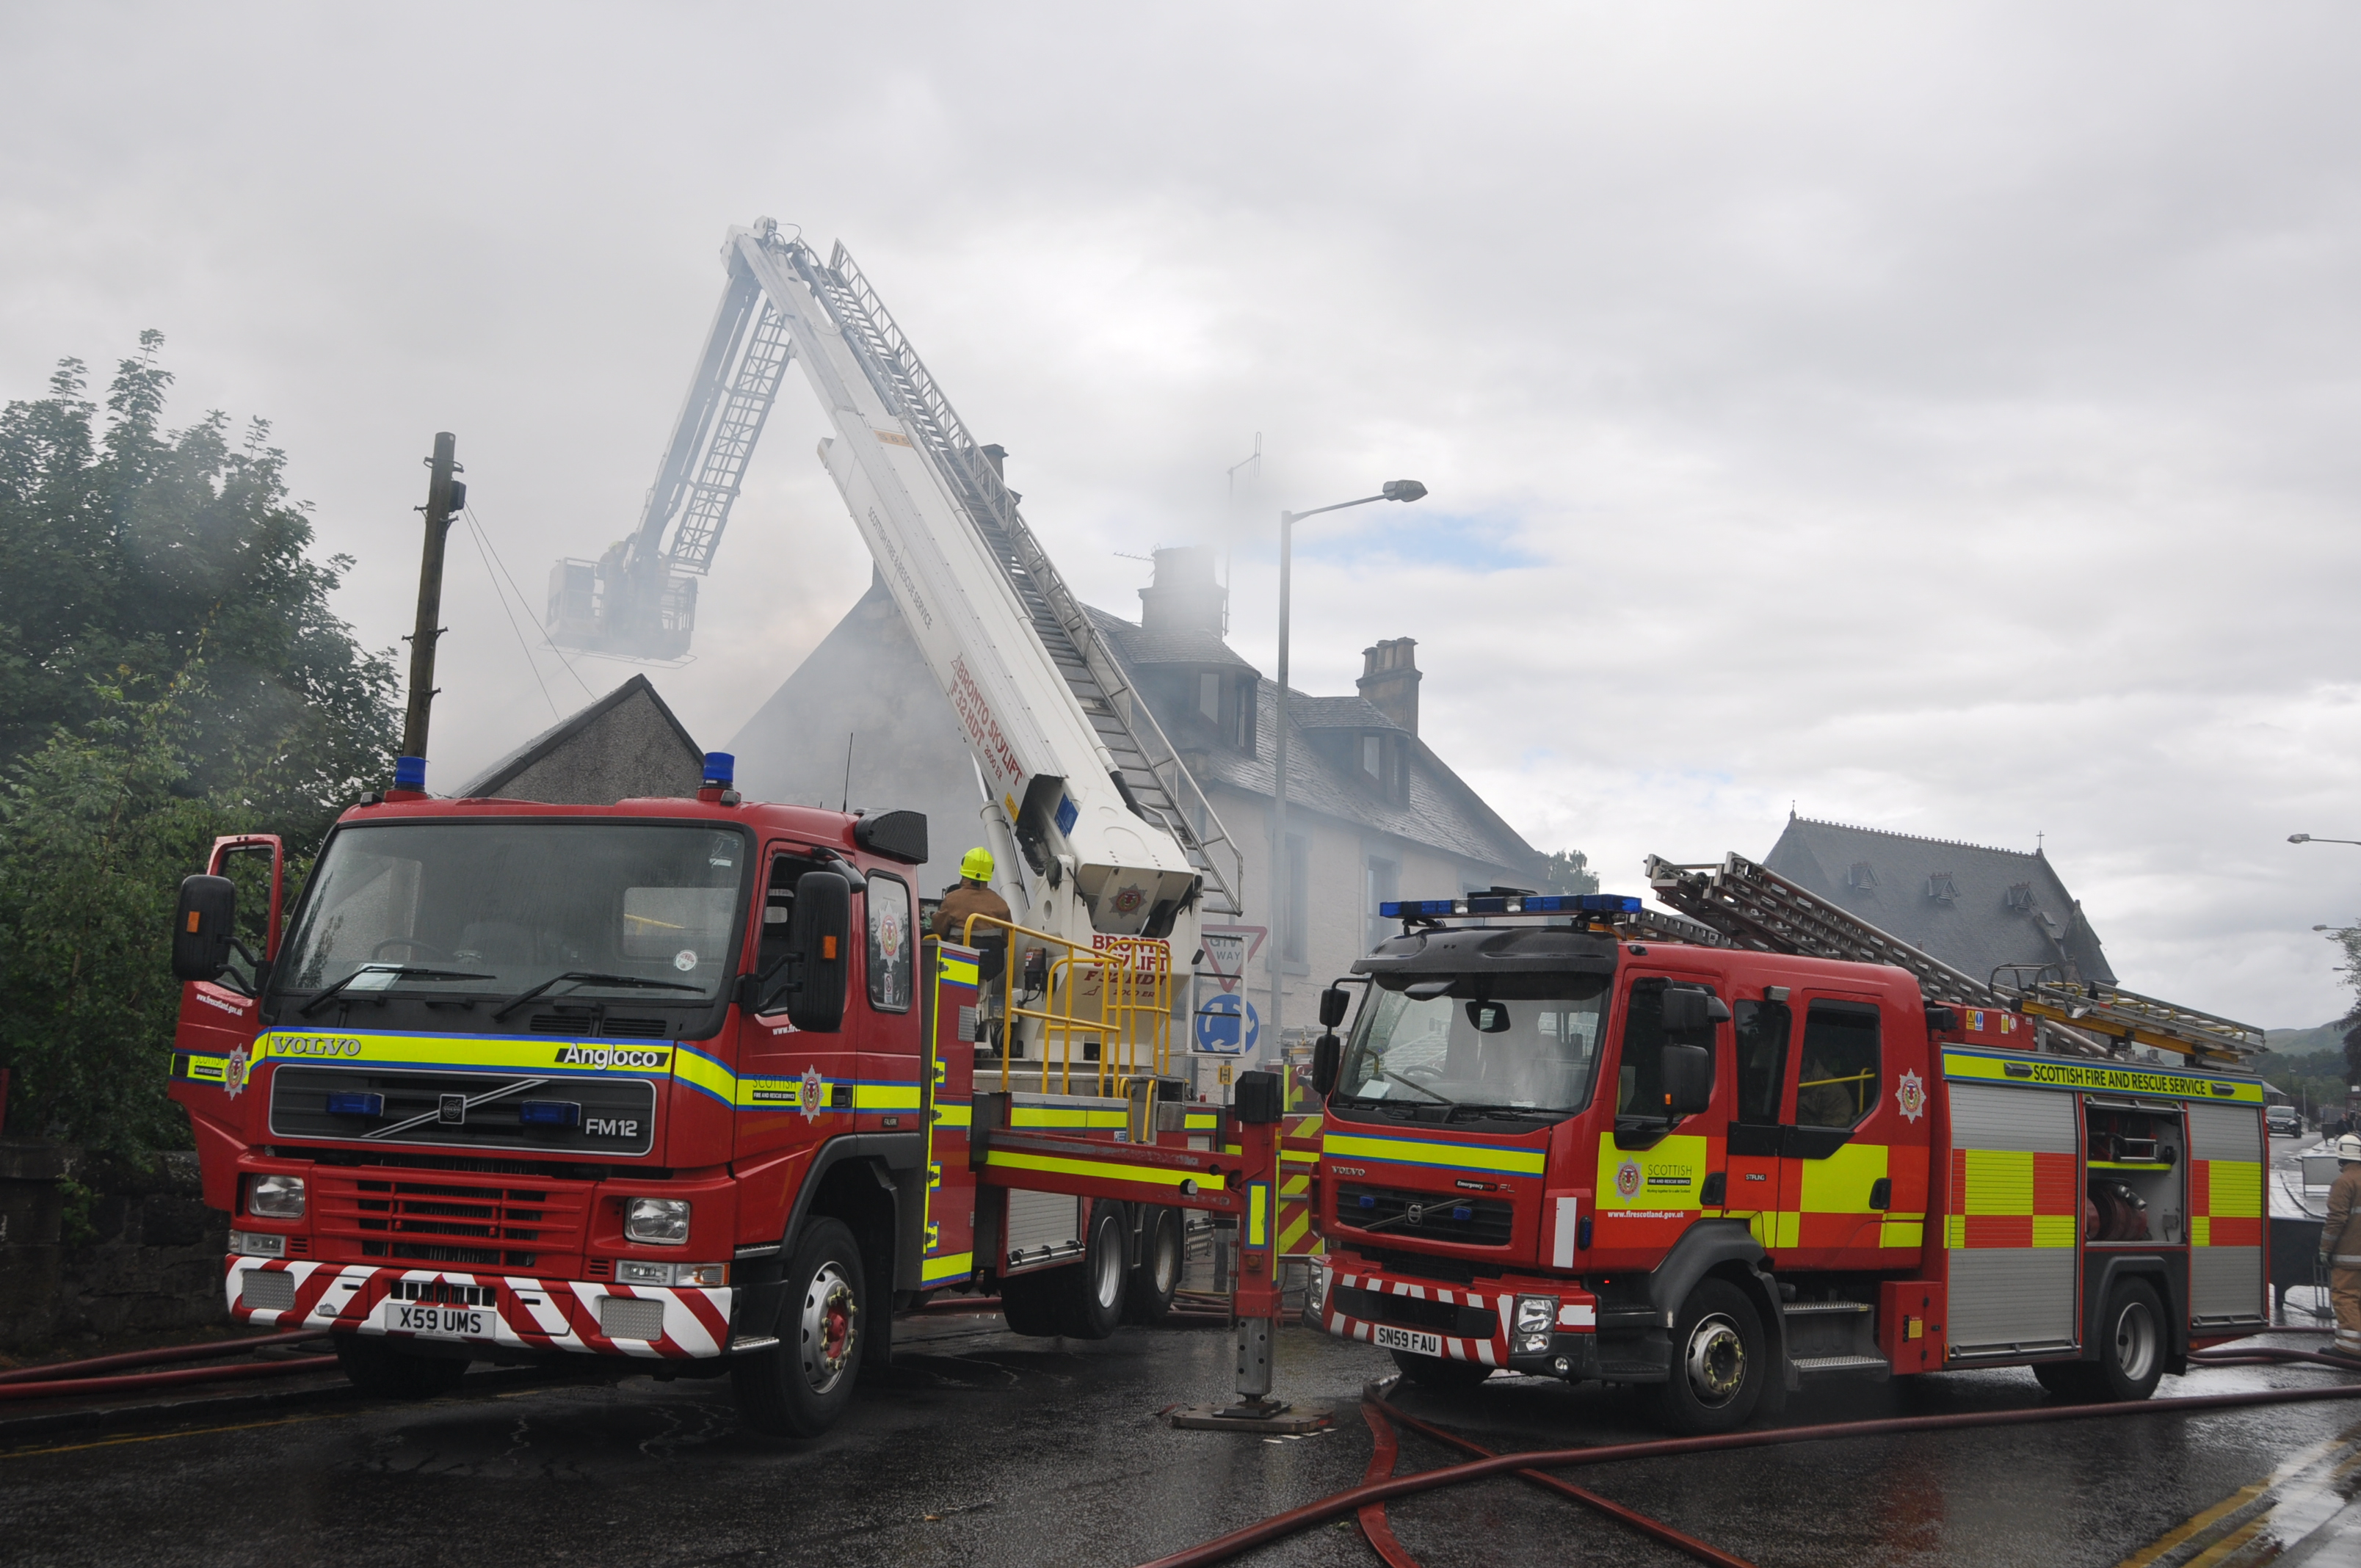 Crews responded to fire at industrial premise in Alloa